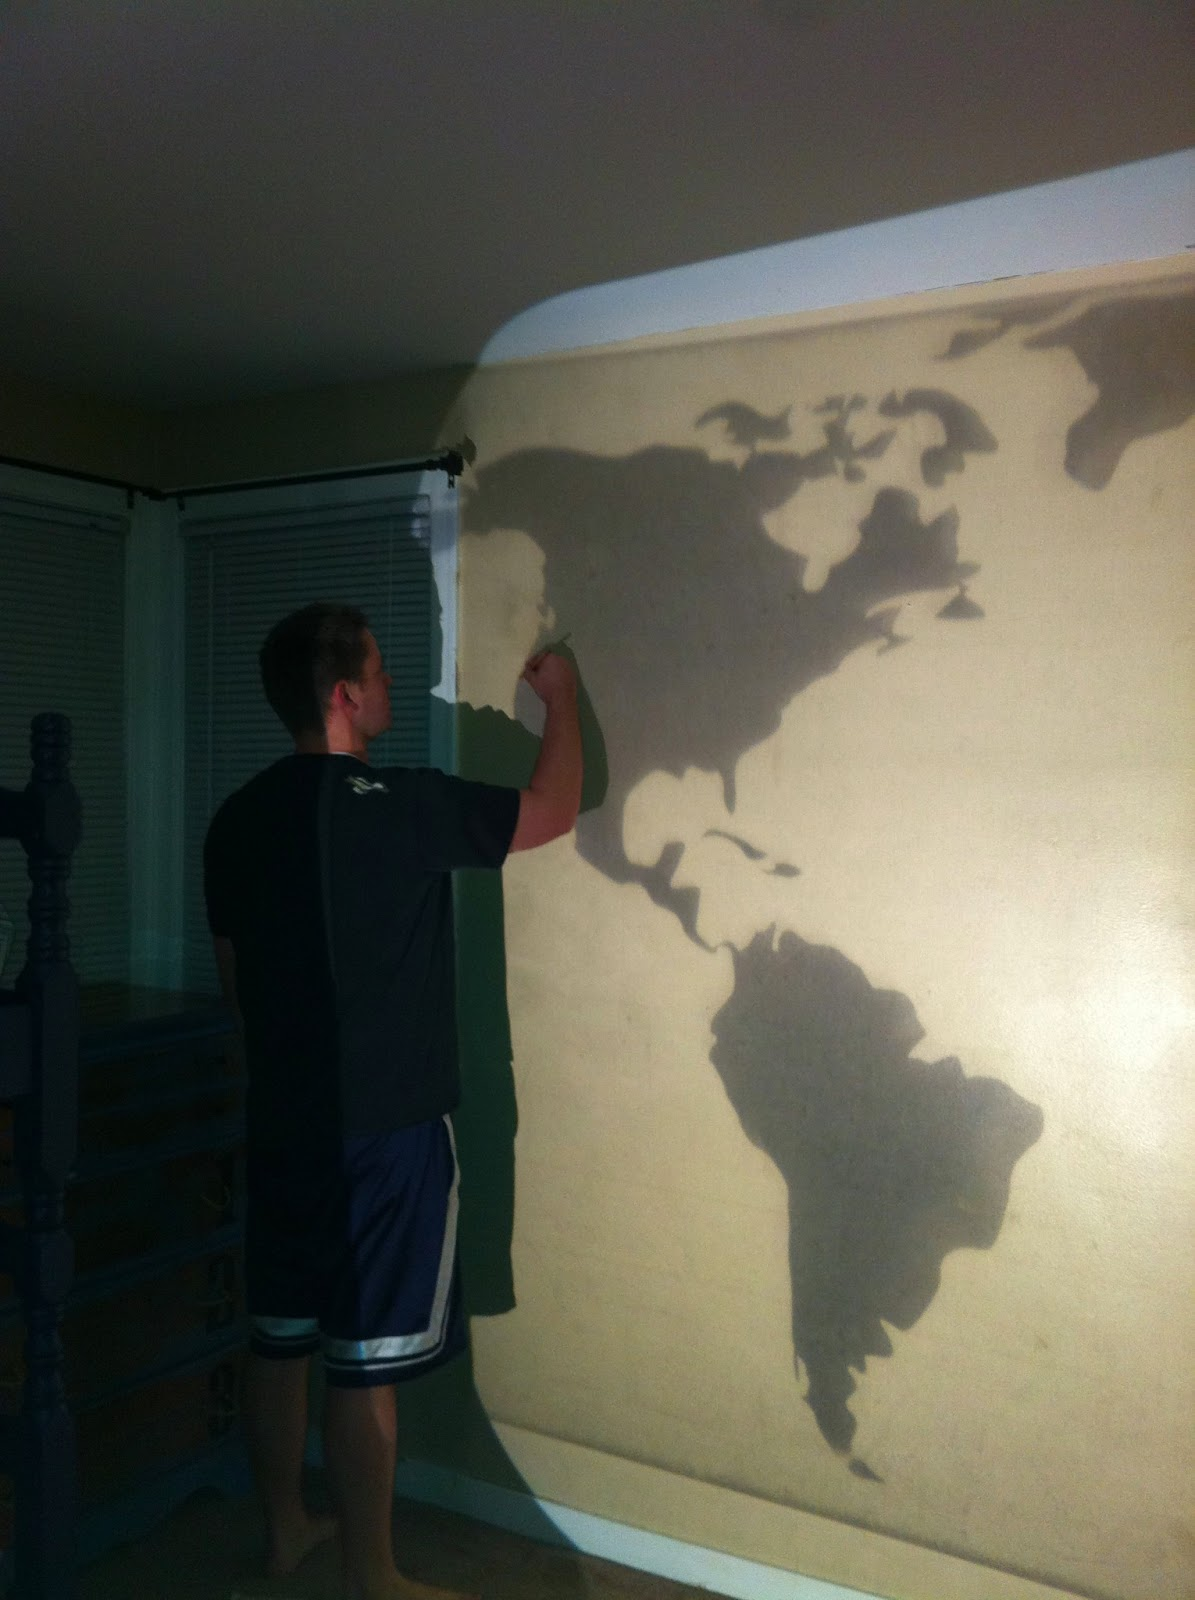 Diy world map wall mural classy clutter for Create wall mural